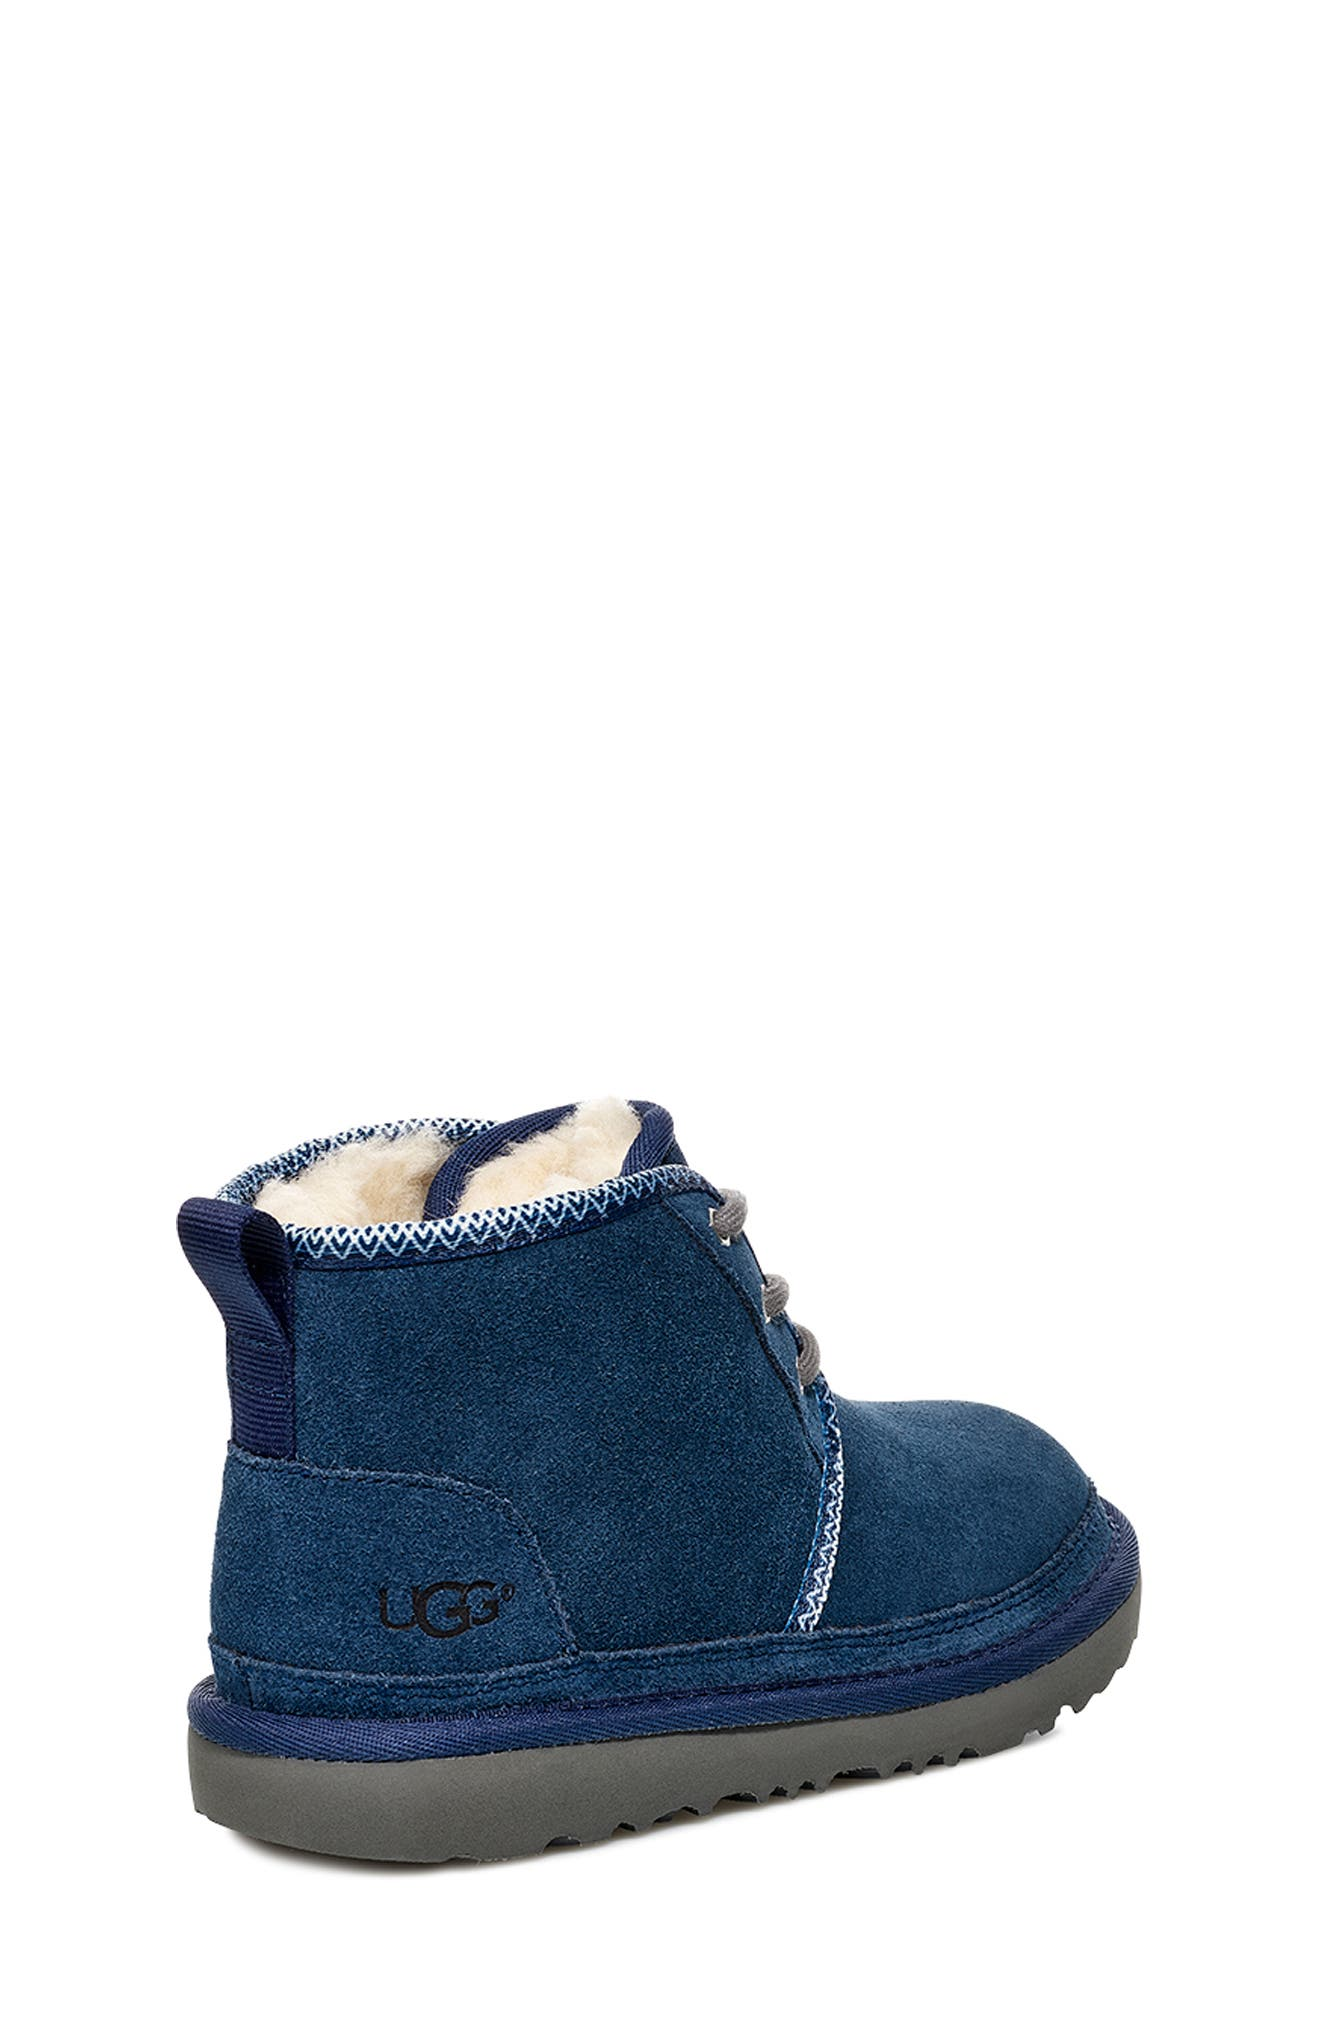 Neumel II Tasman Genuine Shearling Chukka Boot,                             Alternate thumbnail 2, color,                             NAVY / TASMAN